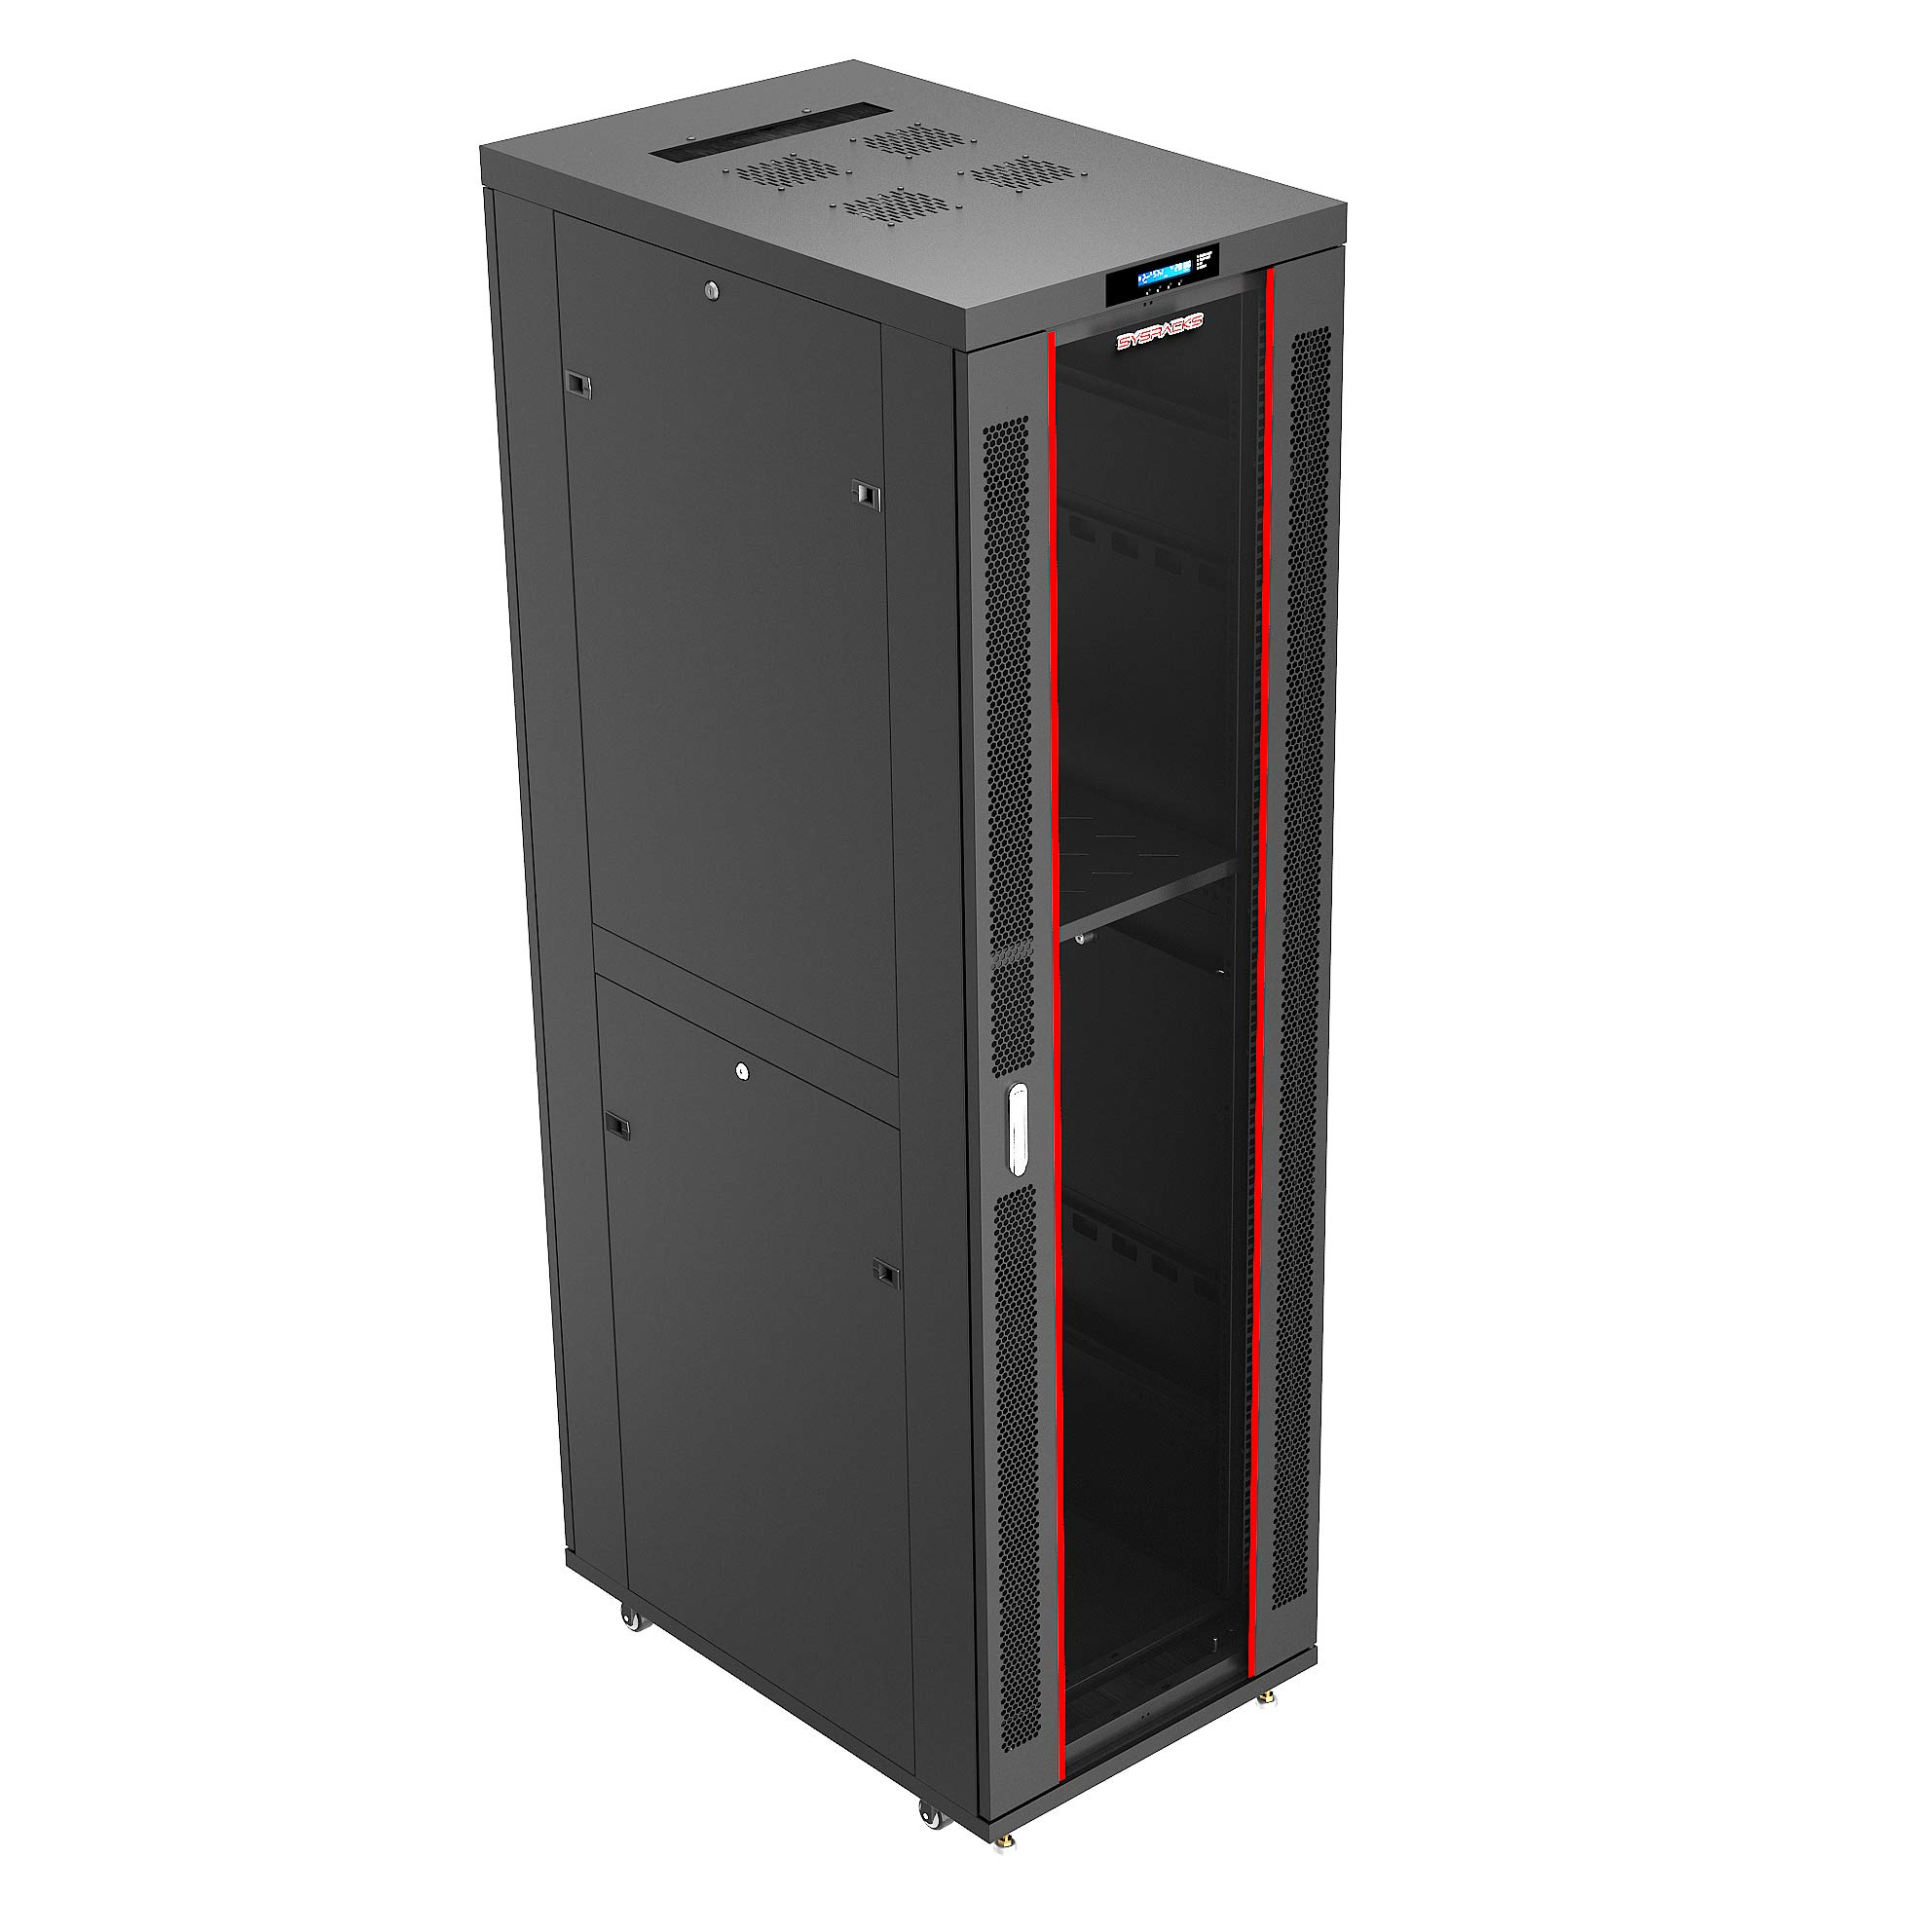 42U 39'' Deep 19'' IT Network Free Standing Server Rack Cabinet Enclosure +Bonus!! $150 Value: Shelf, Thermo System, Powerbar, 4 Fans